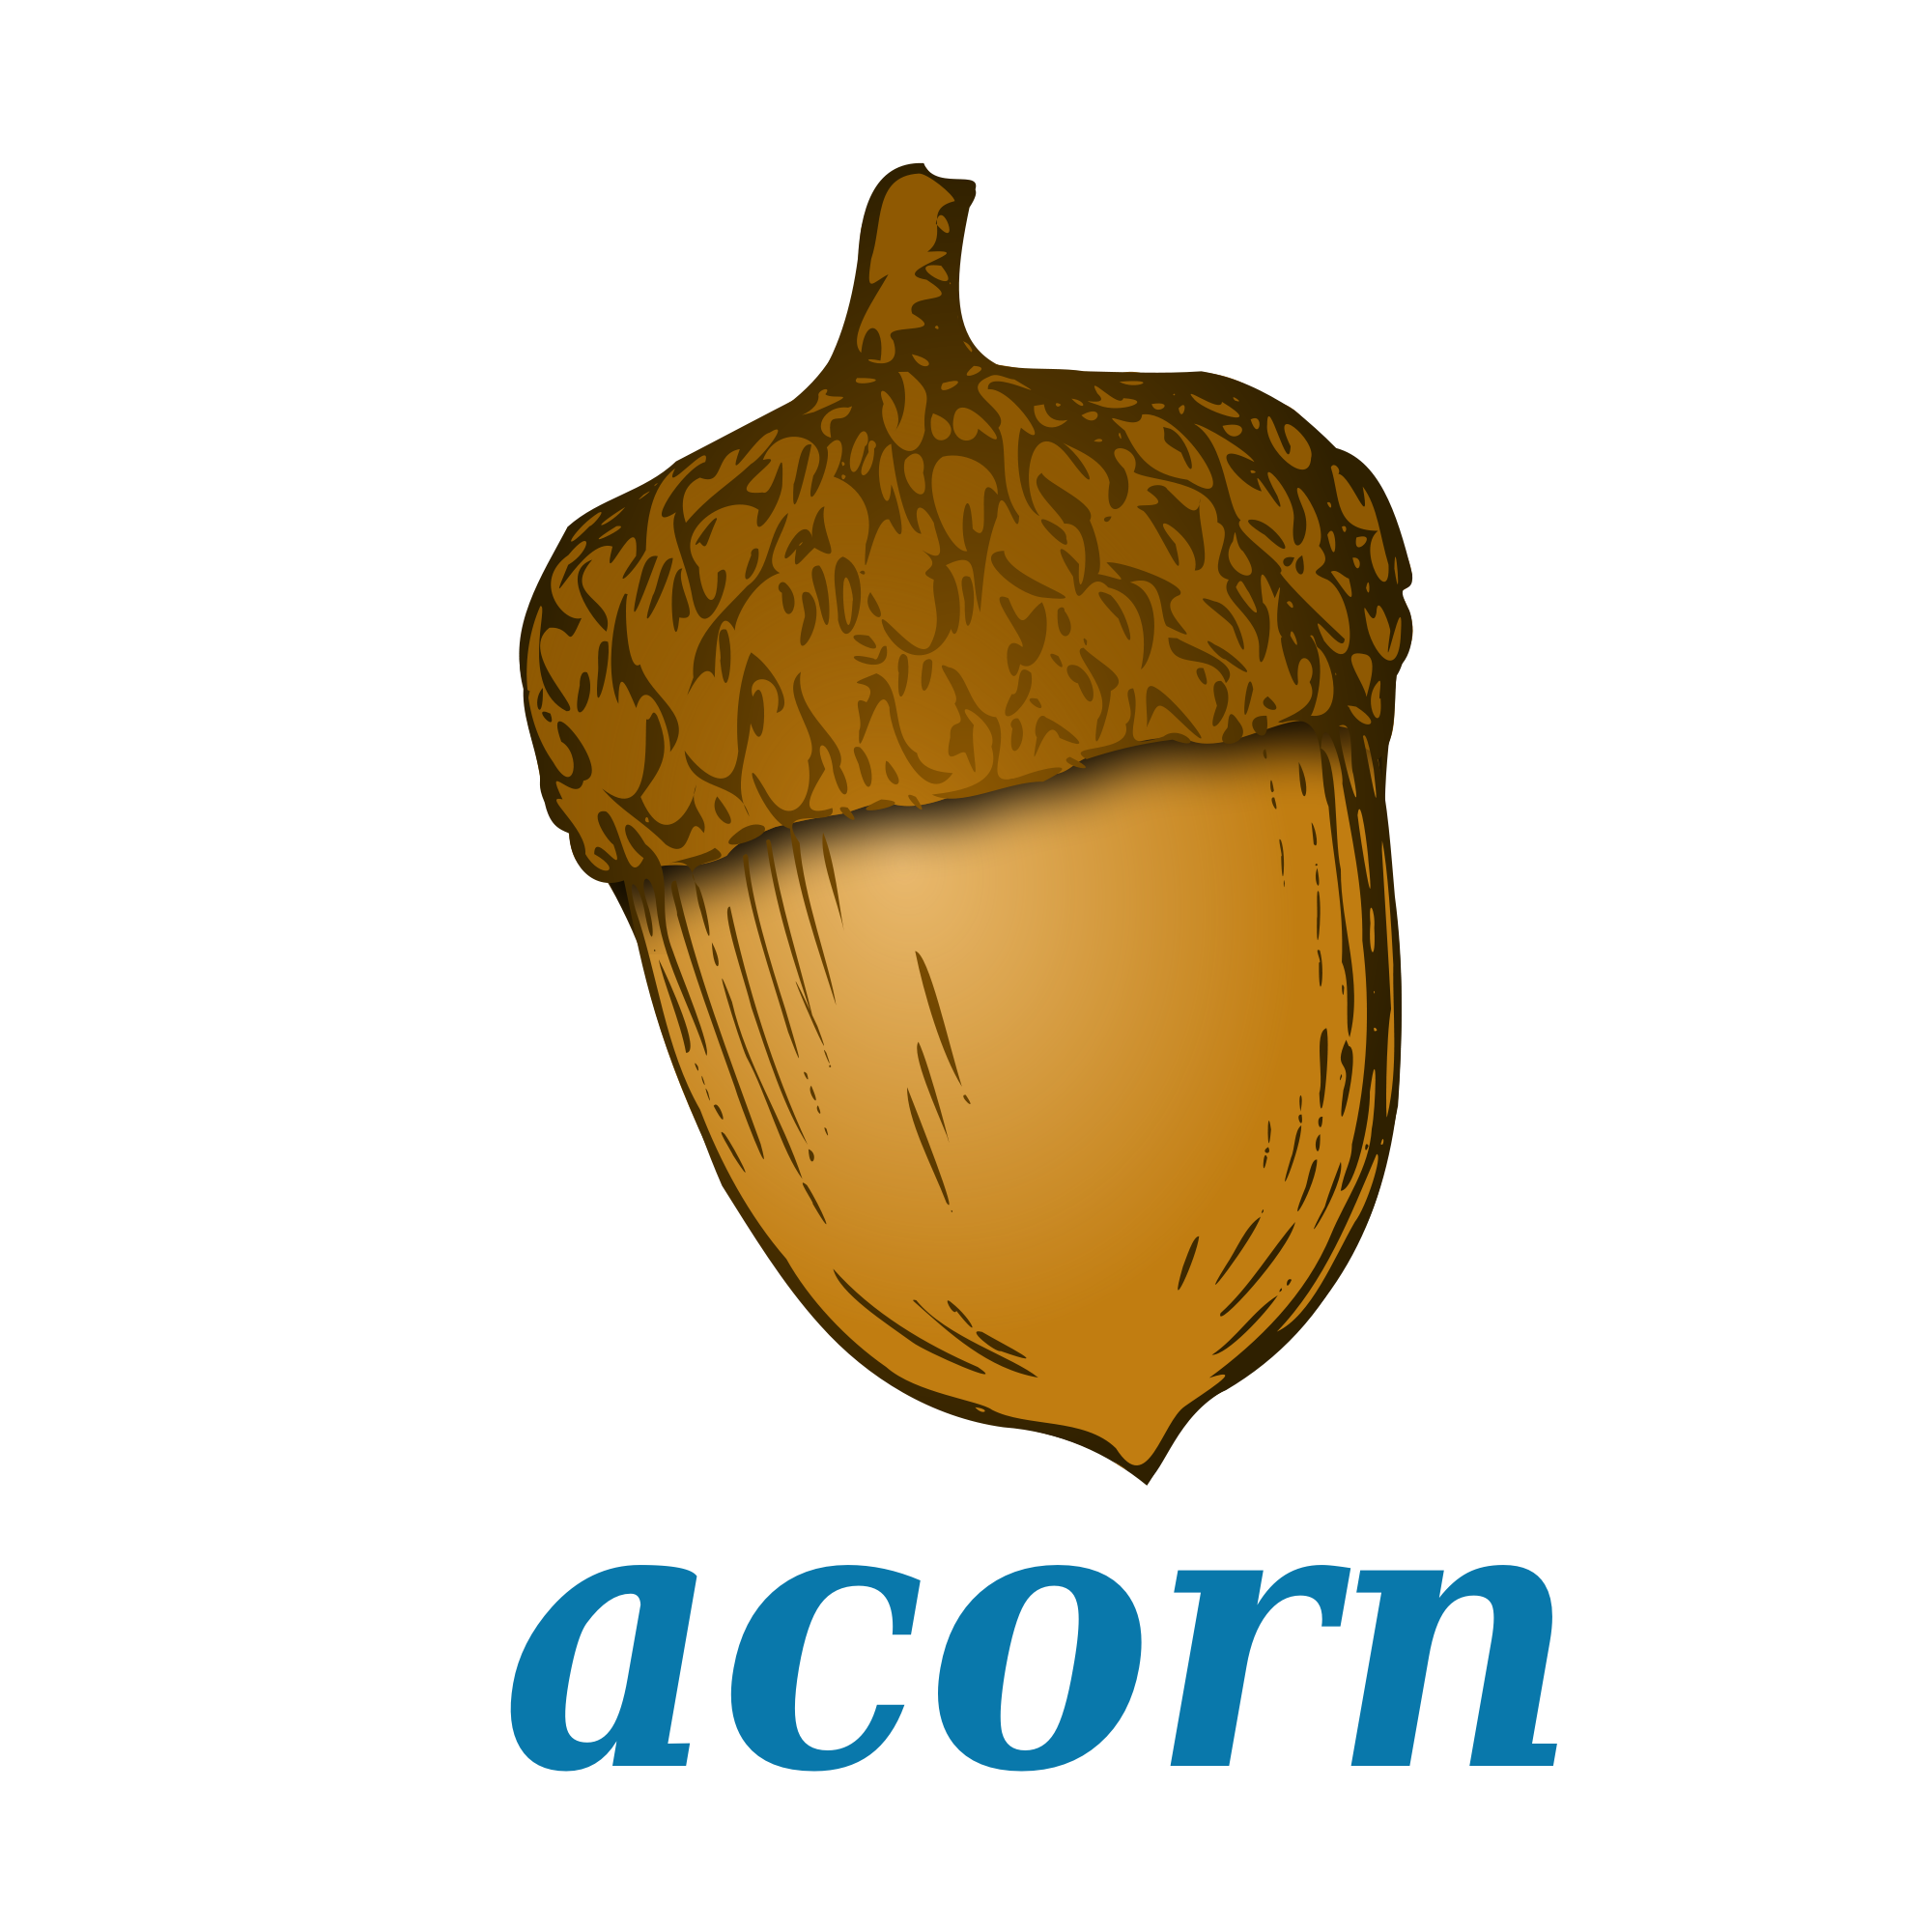 Acorn svg animated